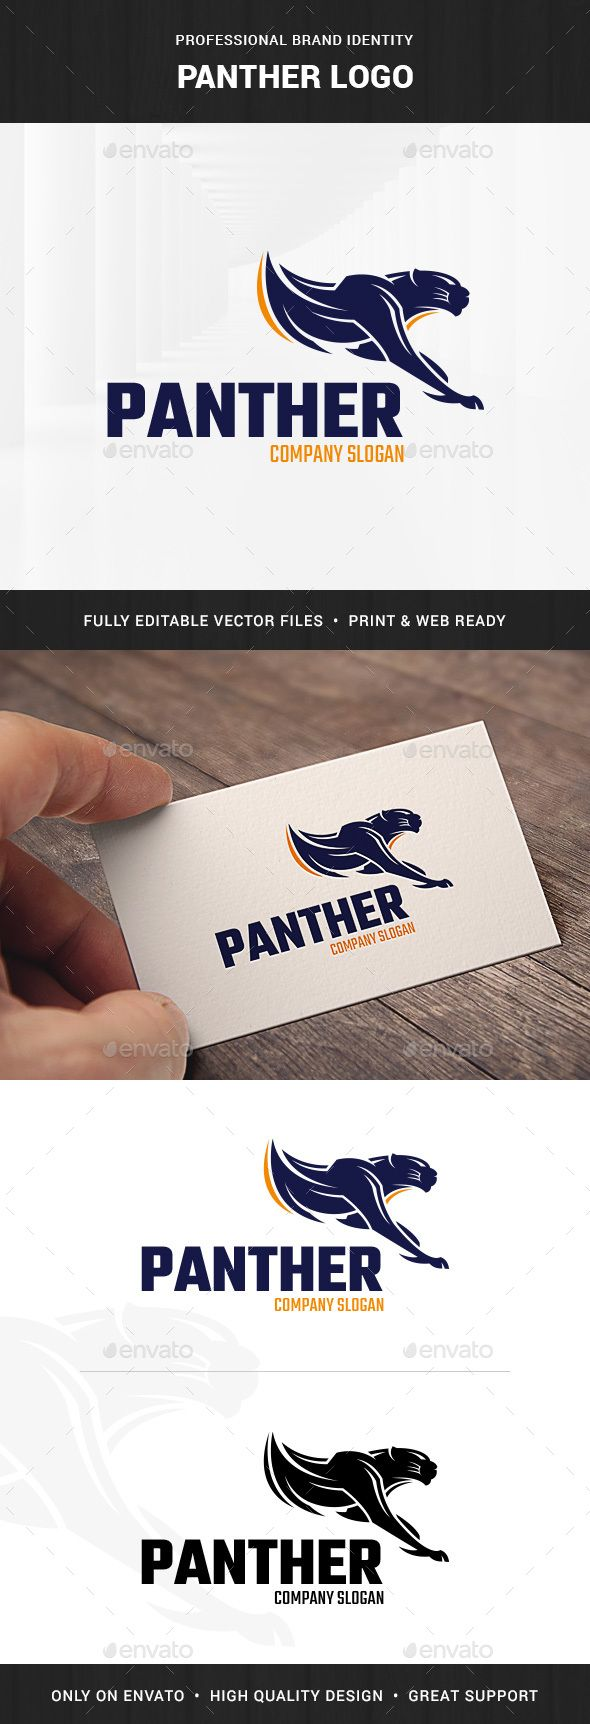 Panther Logo Template — Photoshop PSD #agency #PSD logo • Available here → https://graphicriver.net/item/panther-logo-template/15684623?ref=pxcr